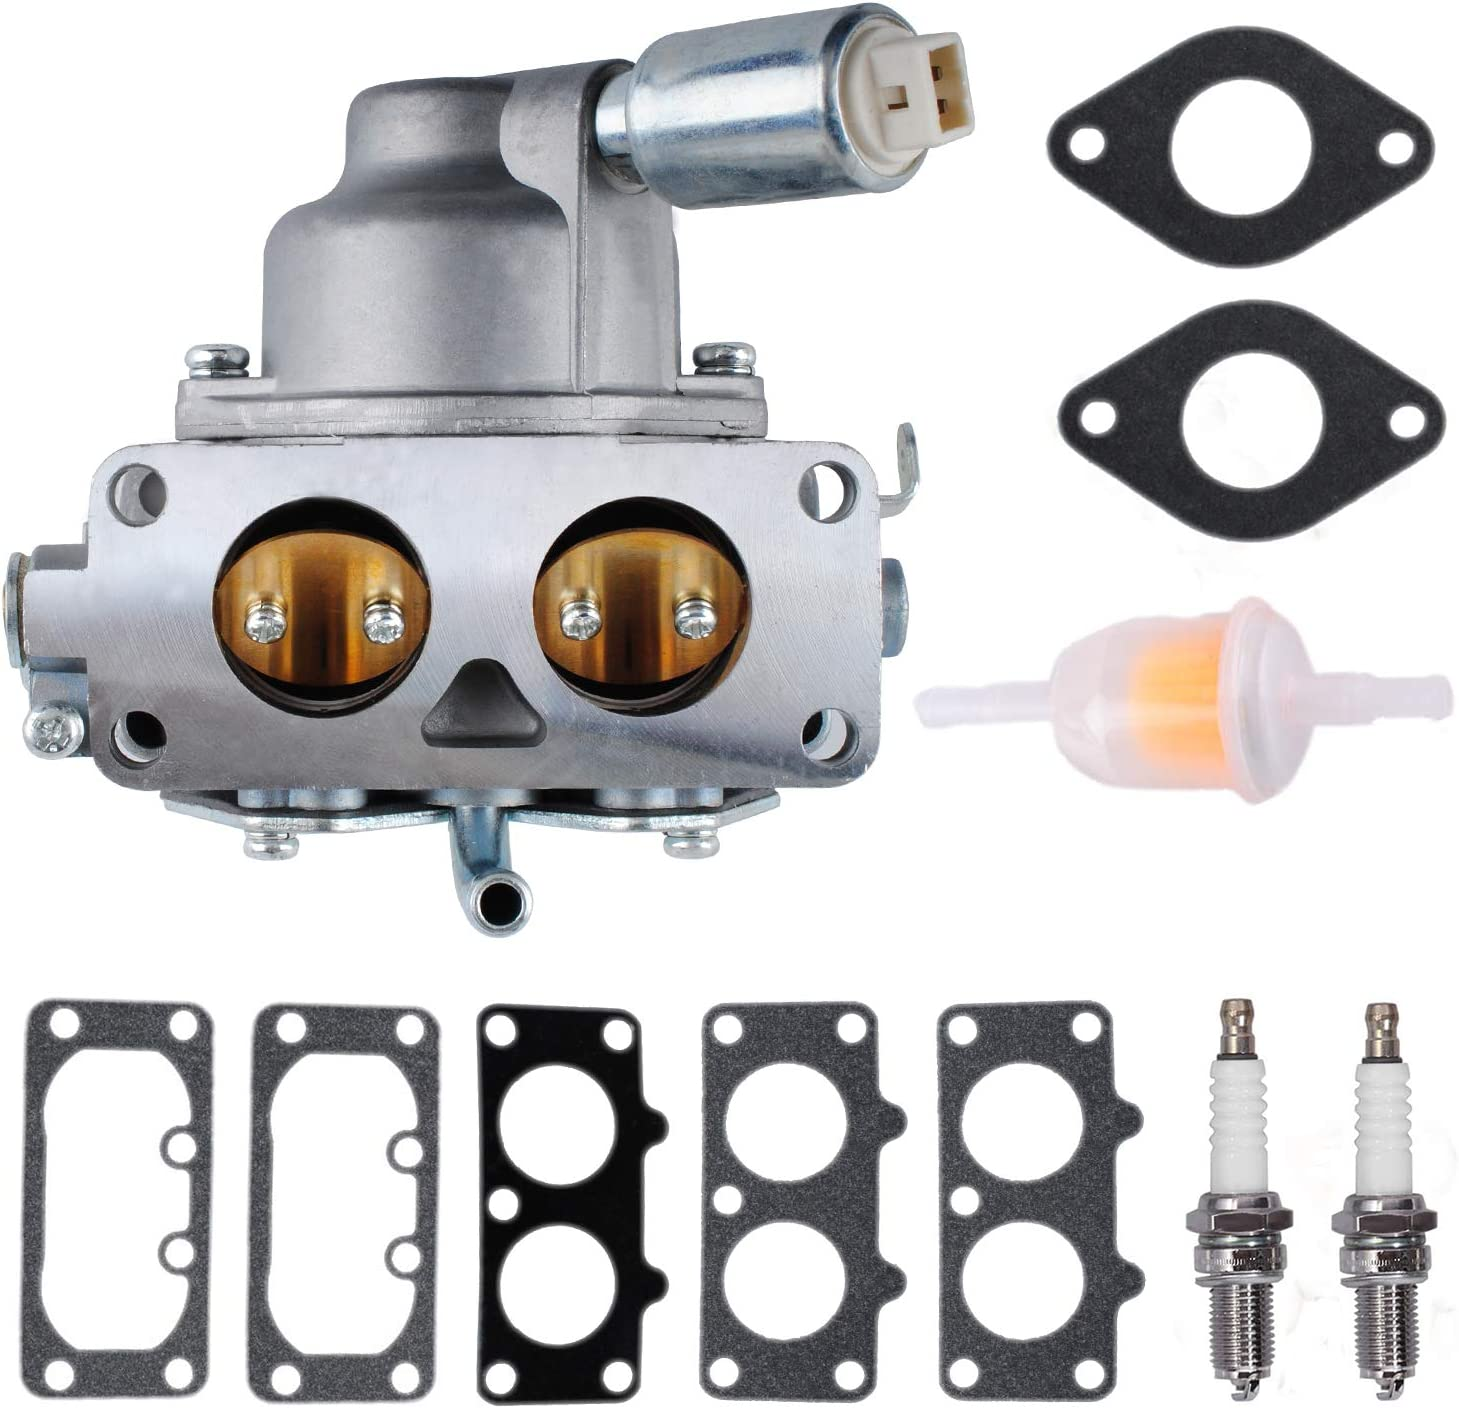 Gekufa 796227 Carburetor Carb with Gasket Kit Fit for Brigg-s & Stratton 407777 406777 40R877 445677 445877 44L777 44M777 Models 20HP 21HP 23HP 24HP 25HP intek V-Twin Engine, LA135